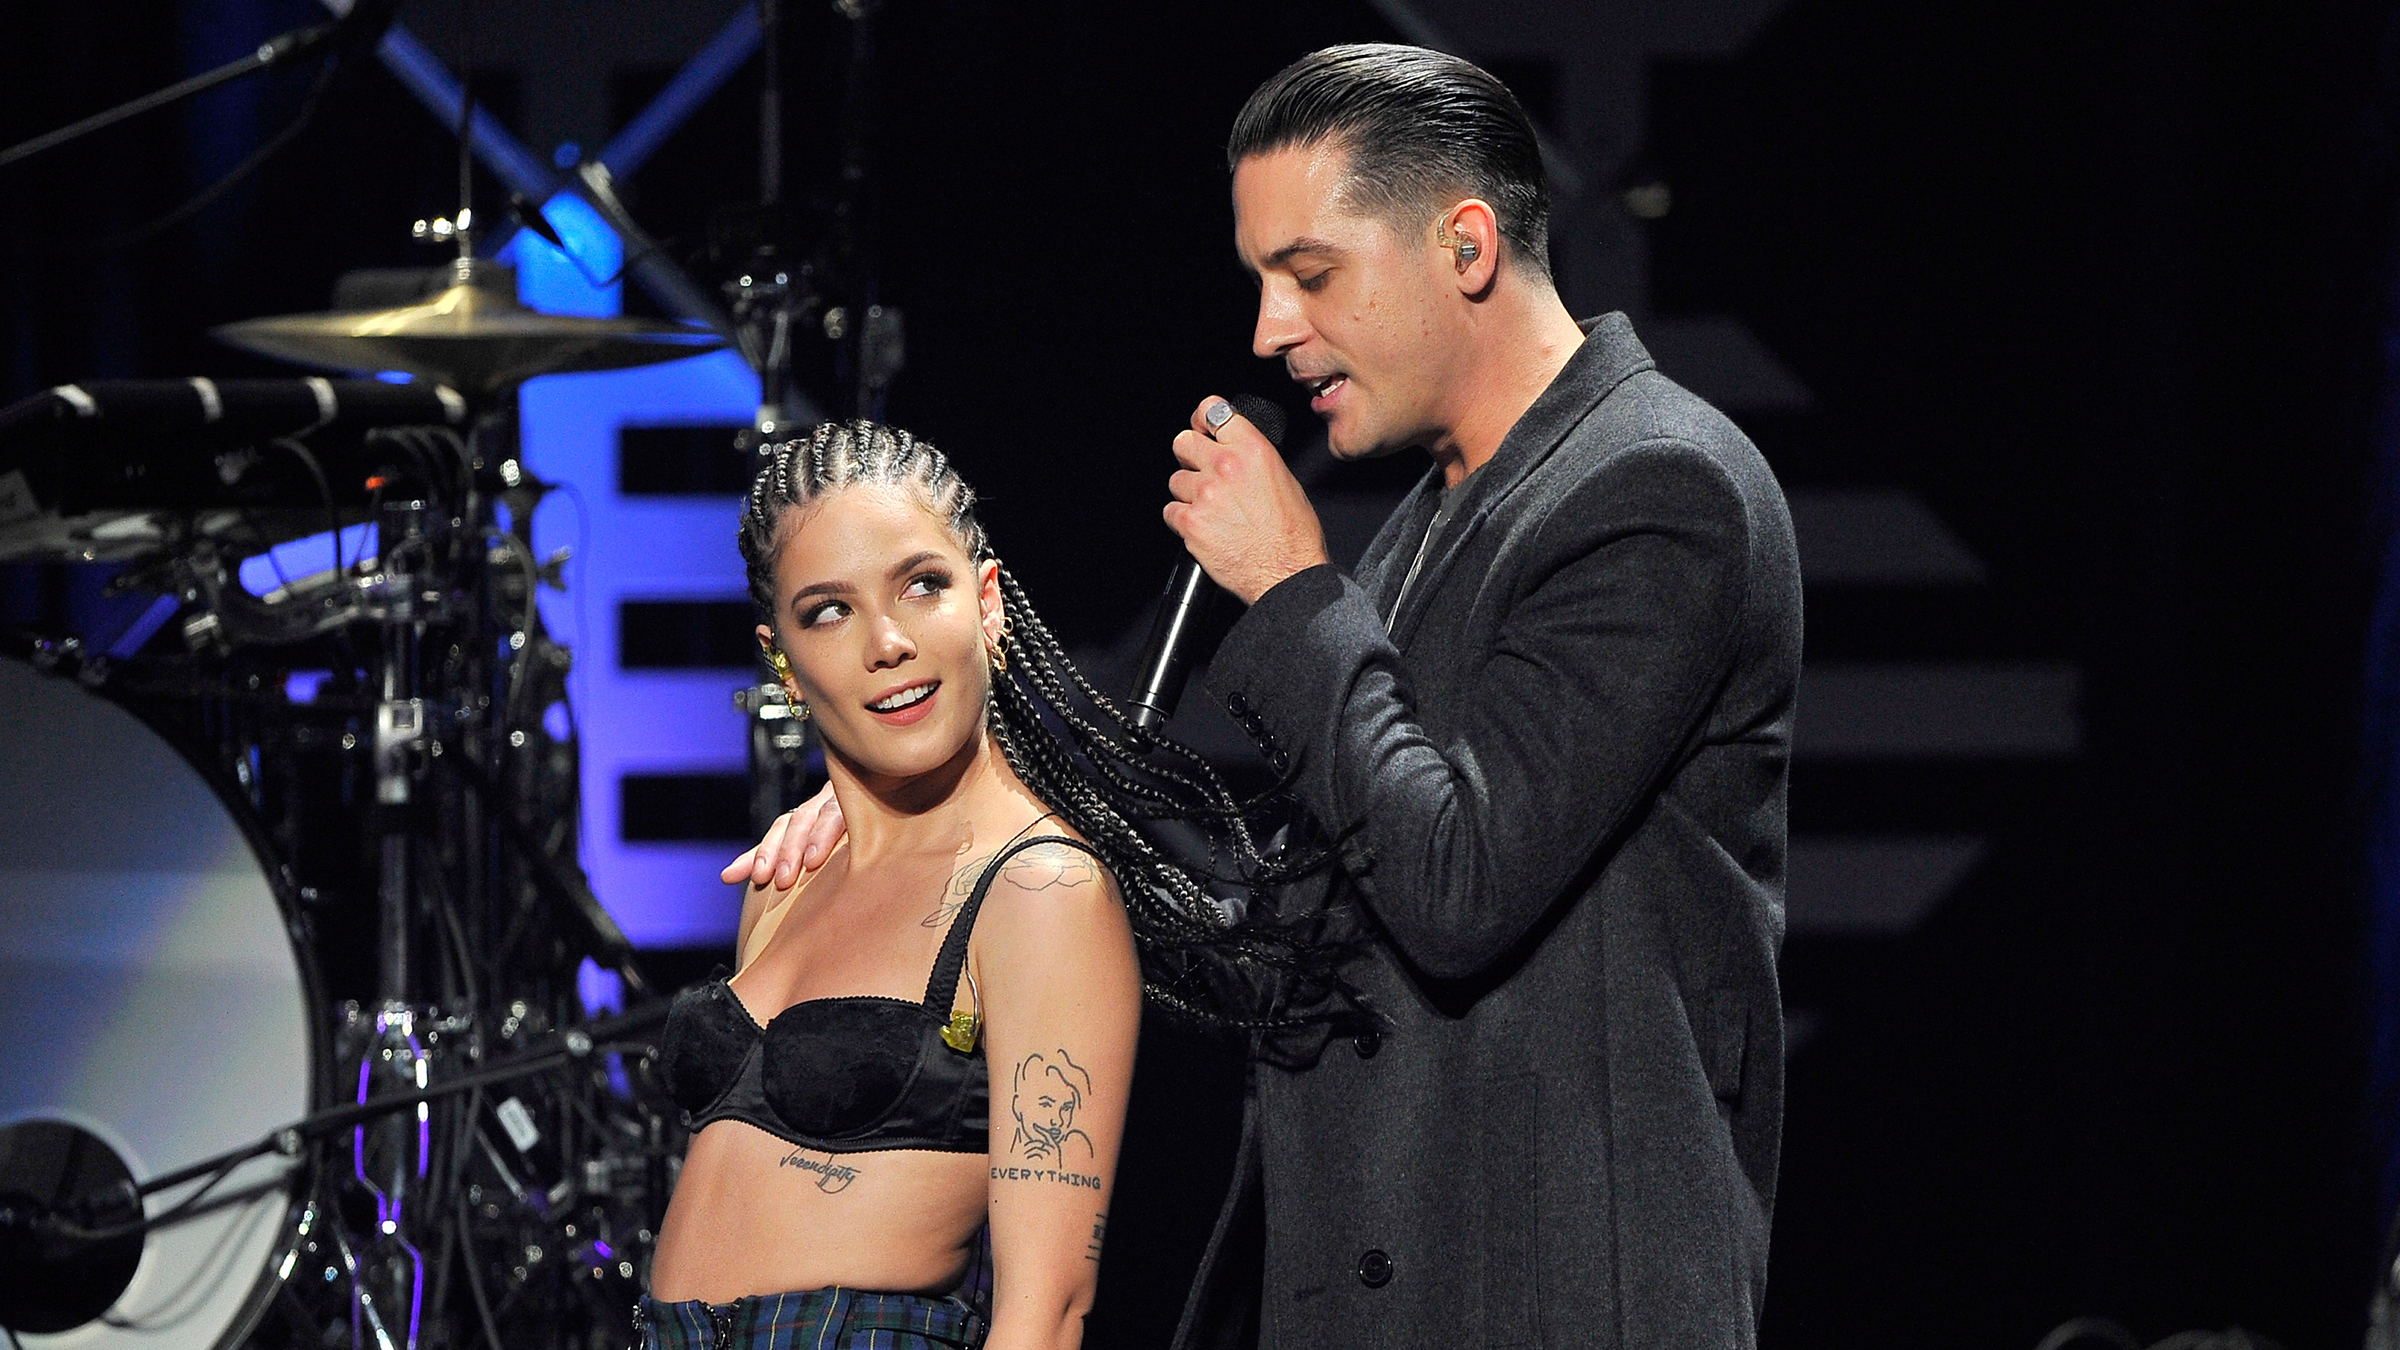 Halsey & G-Eazy Fuel Reconciliation Rumors With Swimsuit